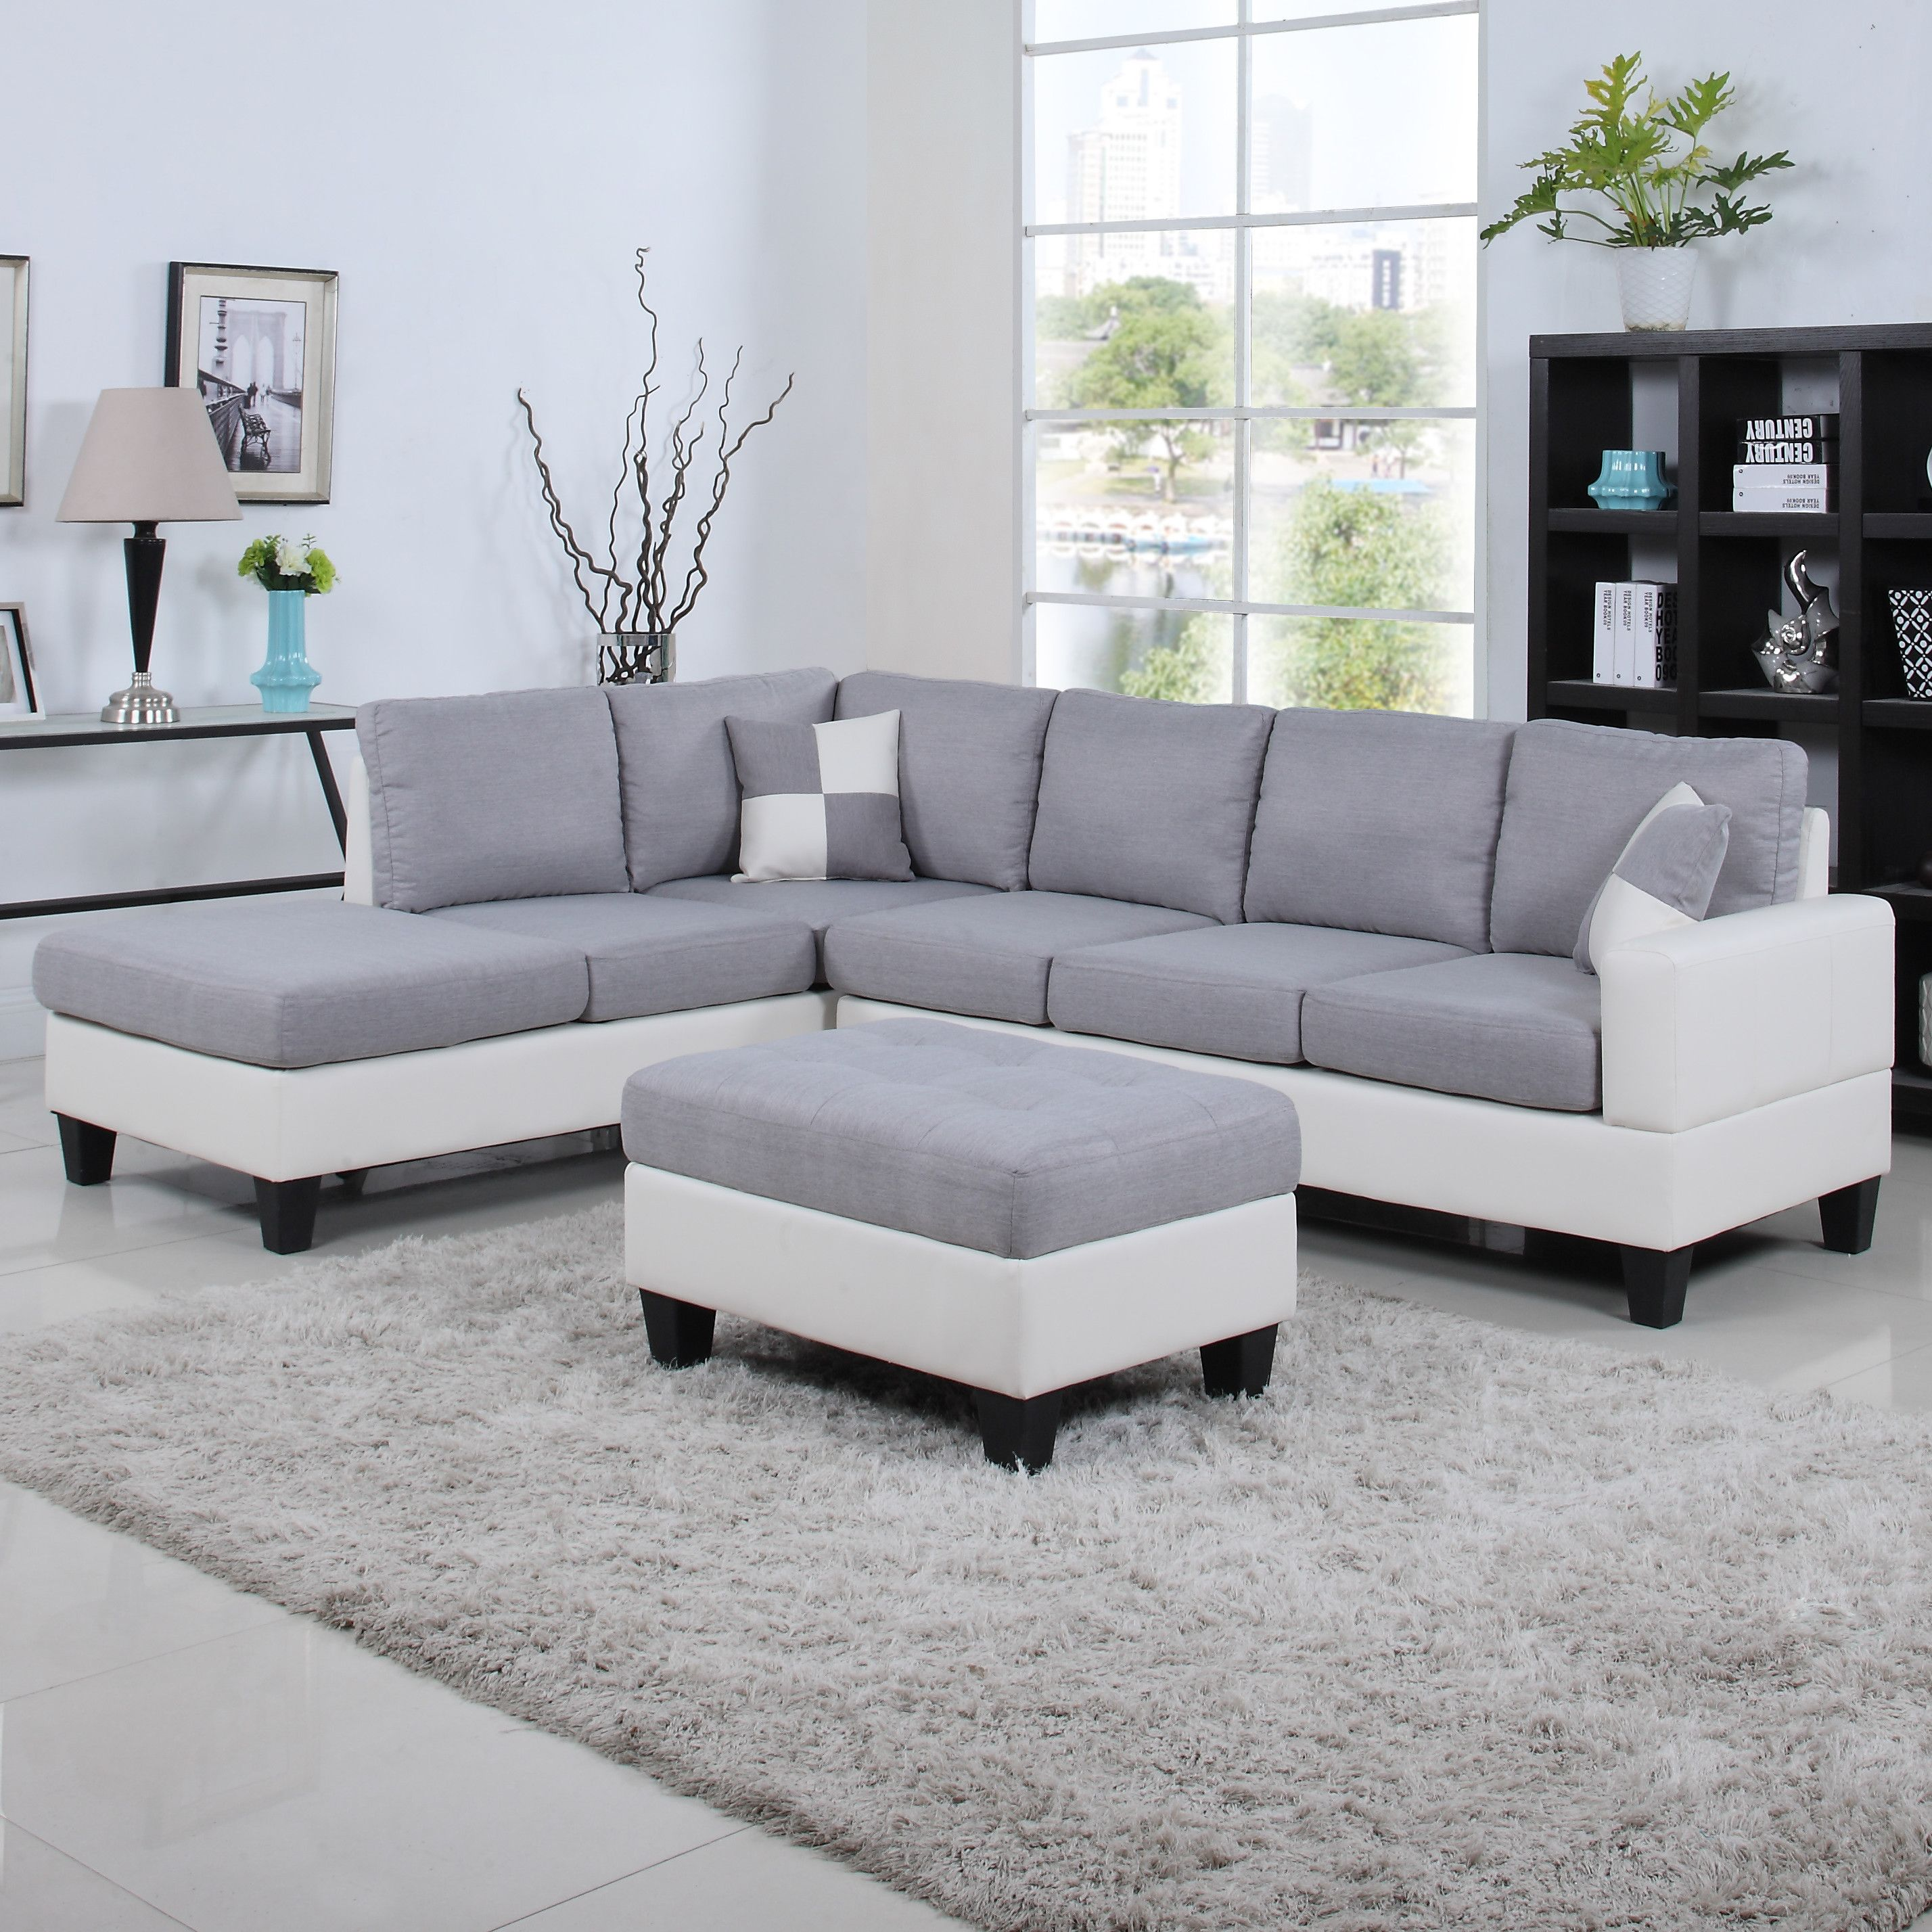 Ecksofa Nola Sectional Home Decor Pinterest Sofa Sectional Sofa And